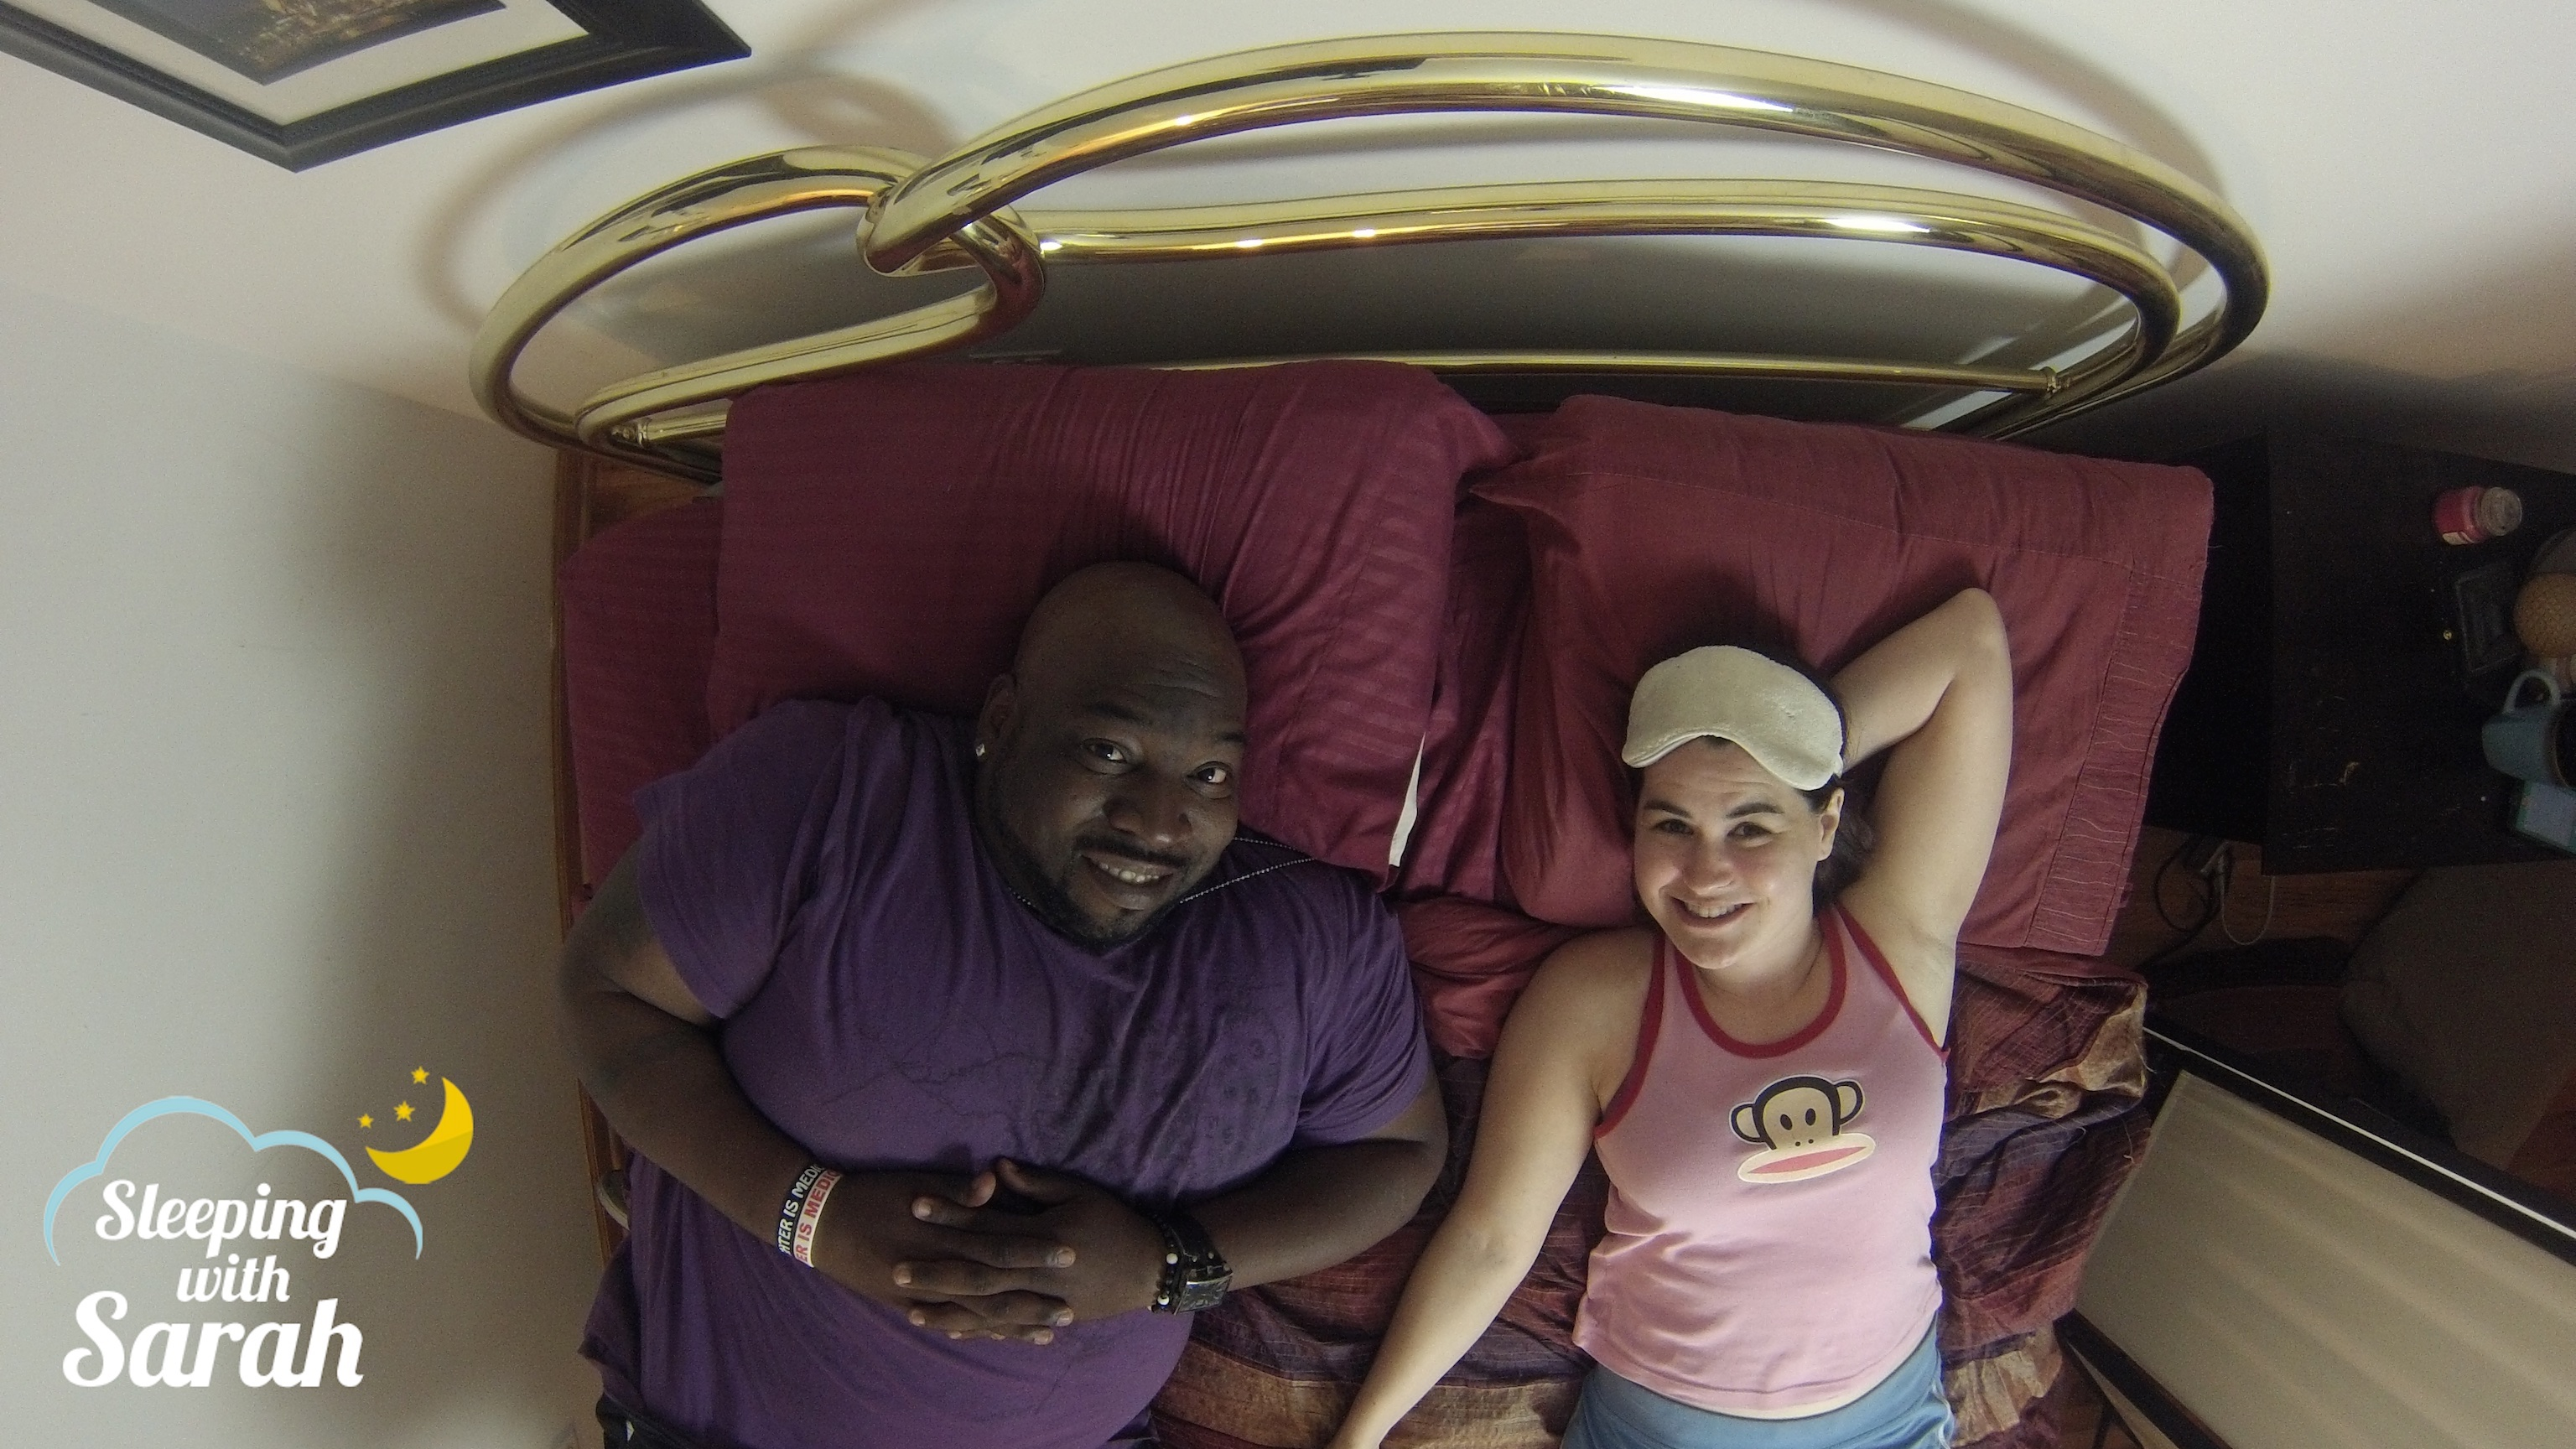 Jay Washington and Sarah Albritton, Sleeping with Sarah